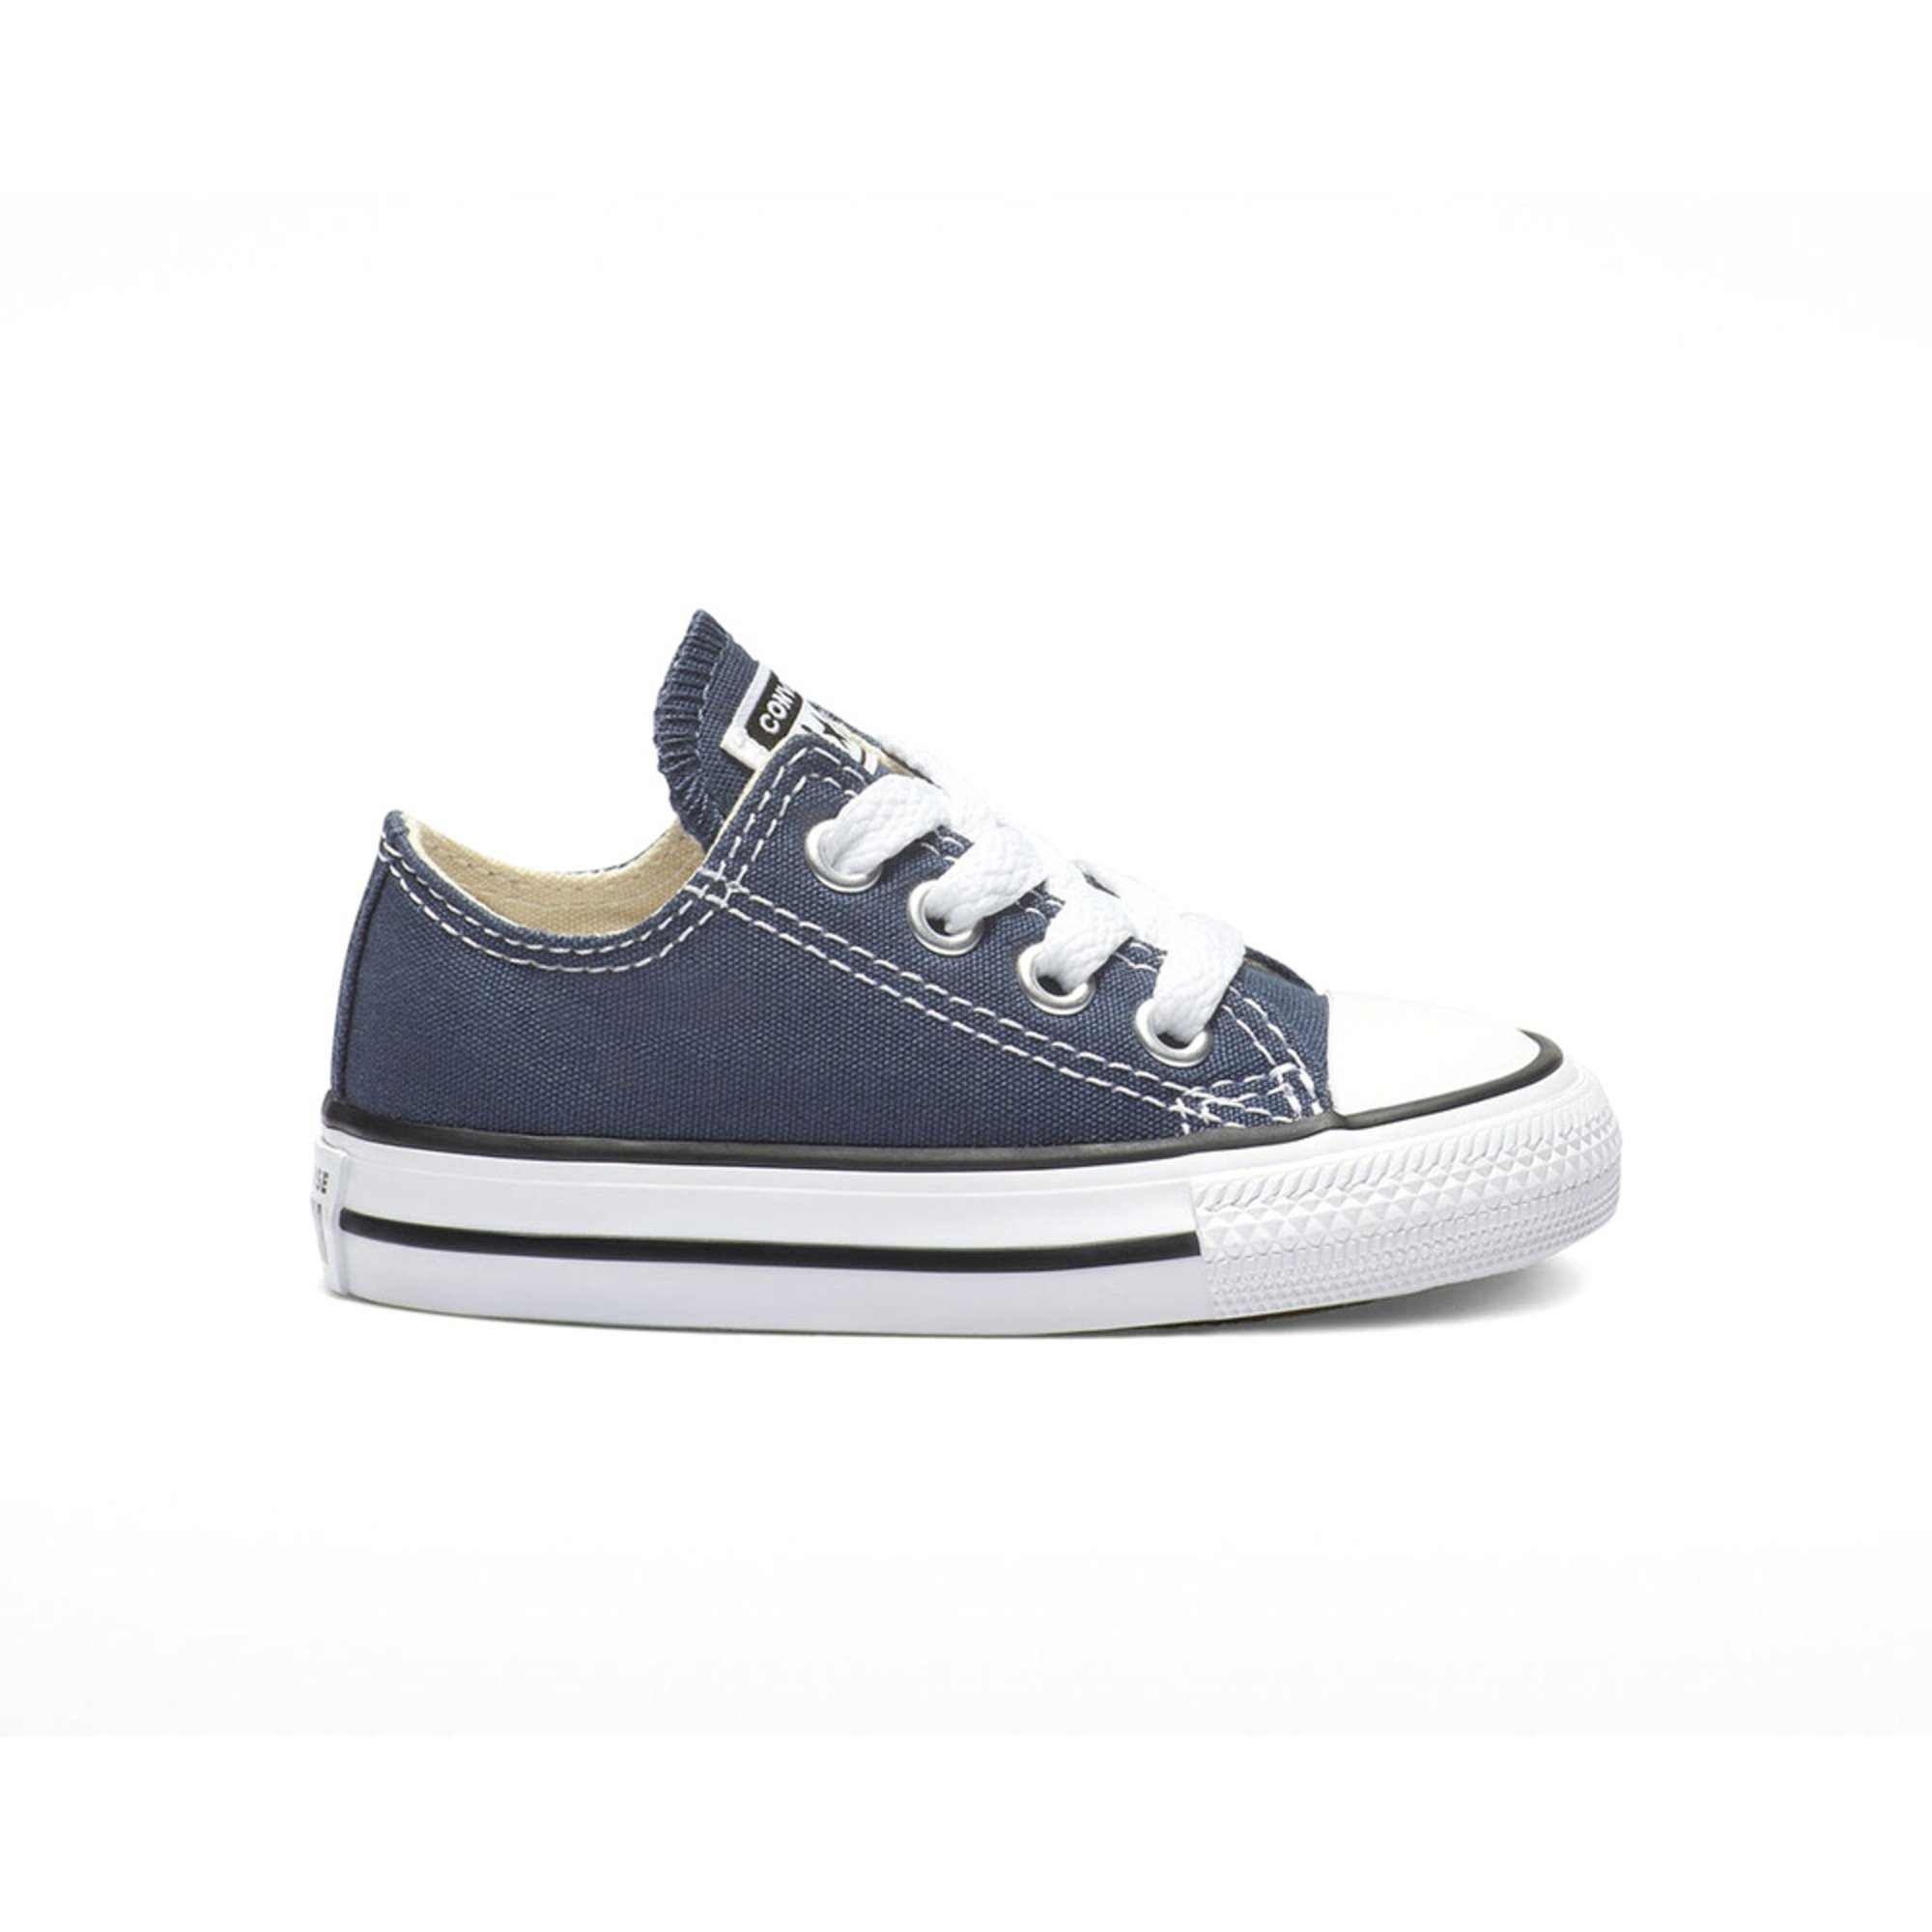 converse clearance outlet ztip  converse clearance outlet